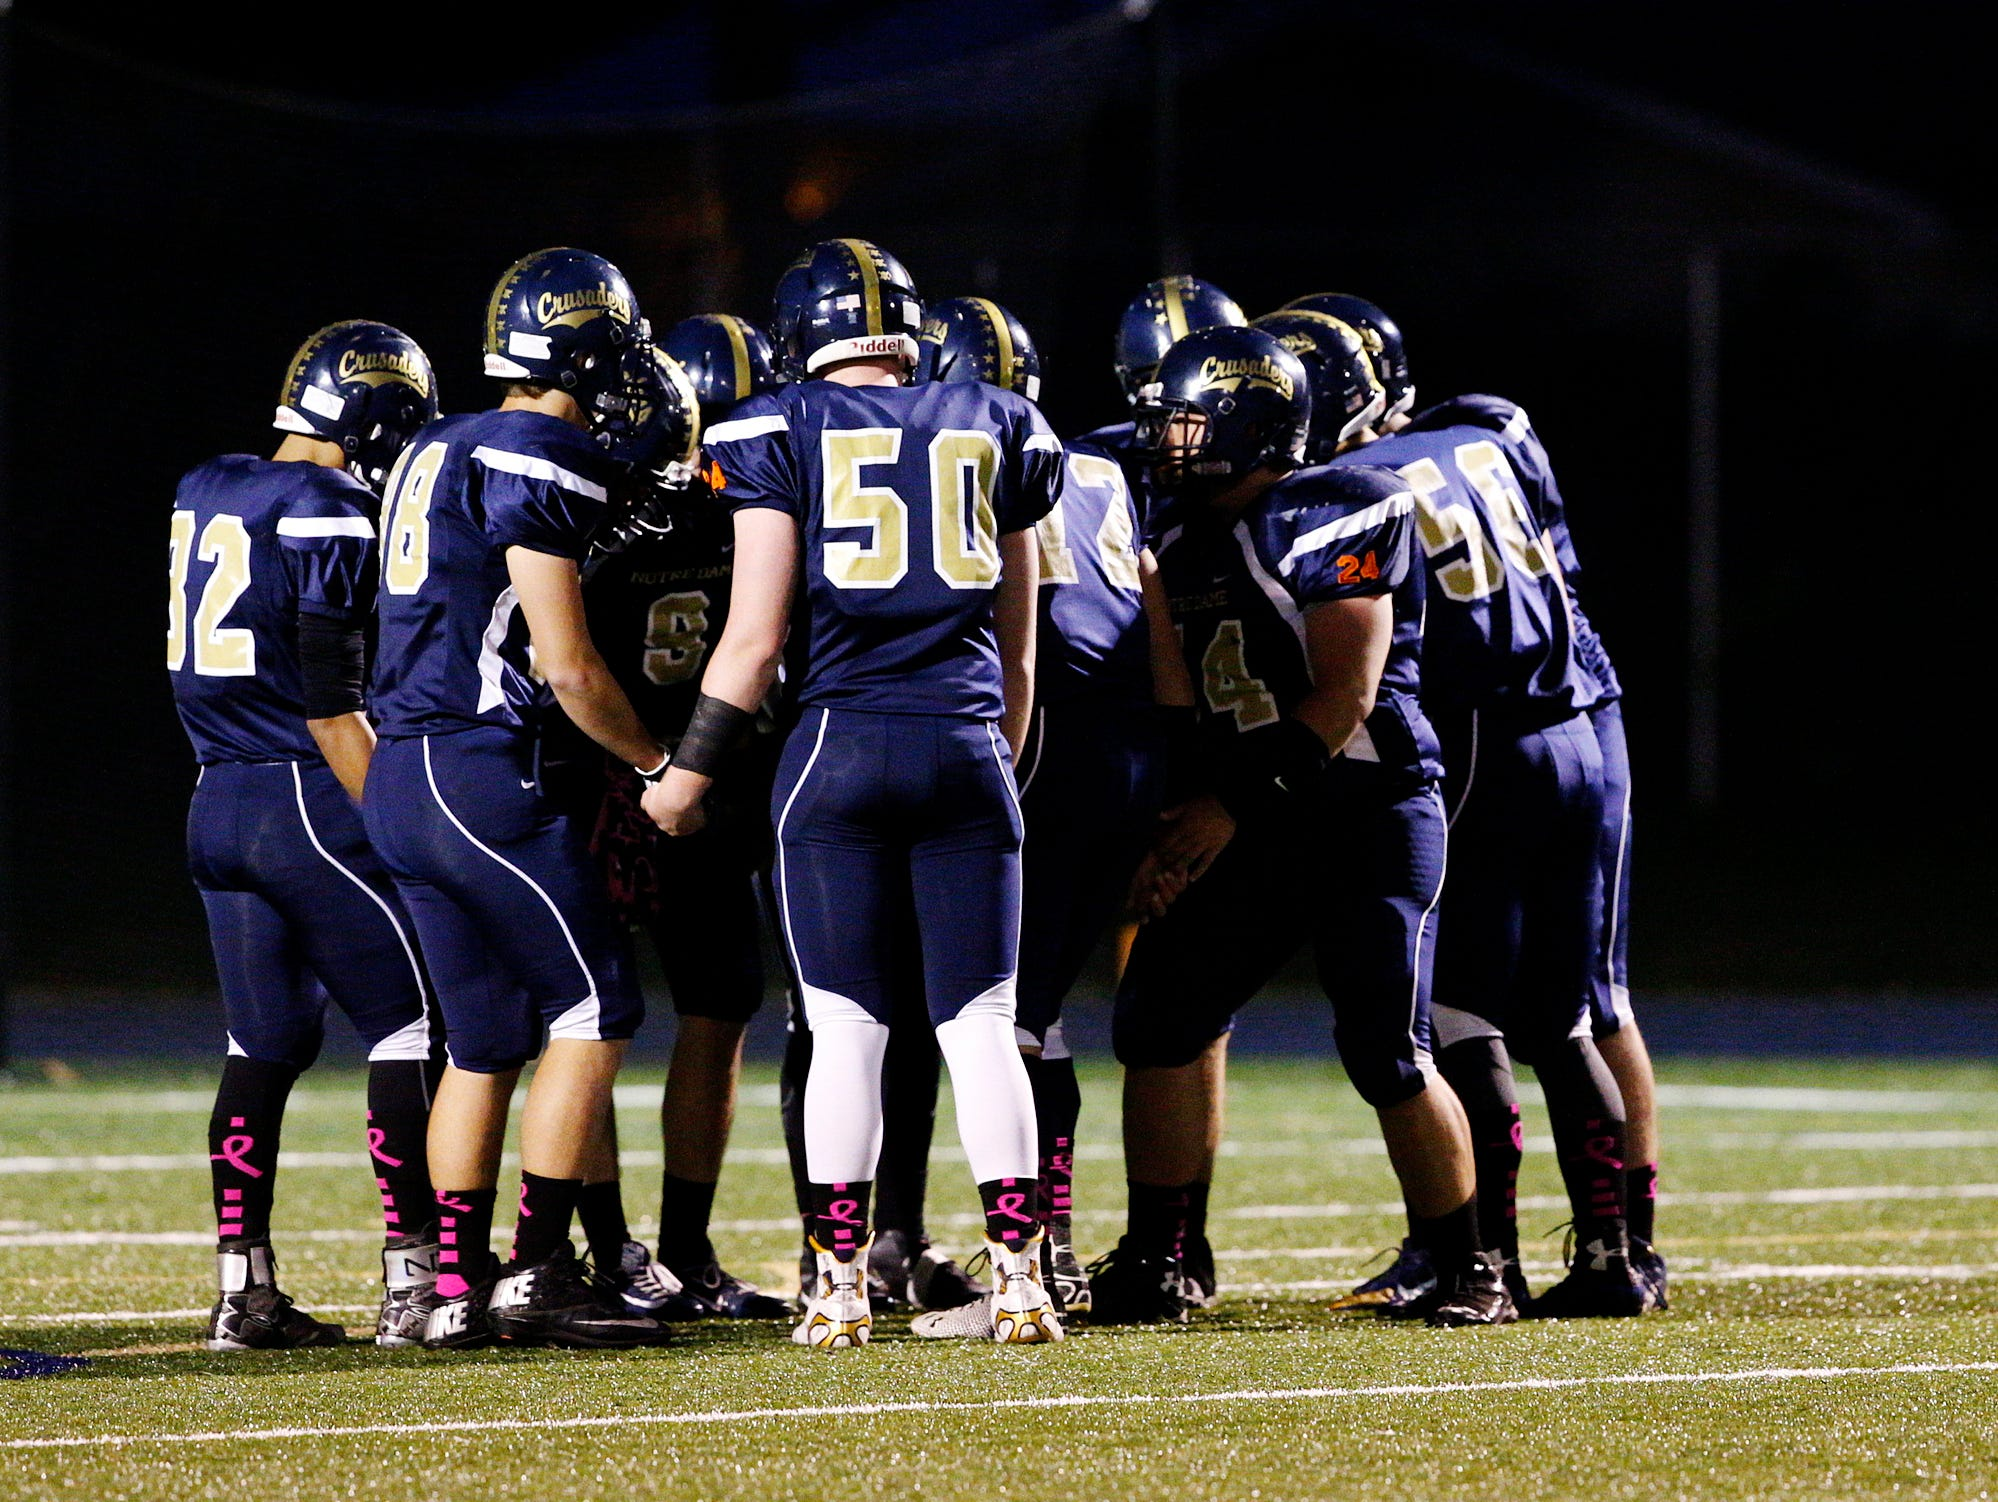 The Notre Dame Crusaders took on the Groton Indians Friday night on the Crusader's field.